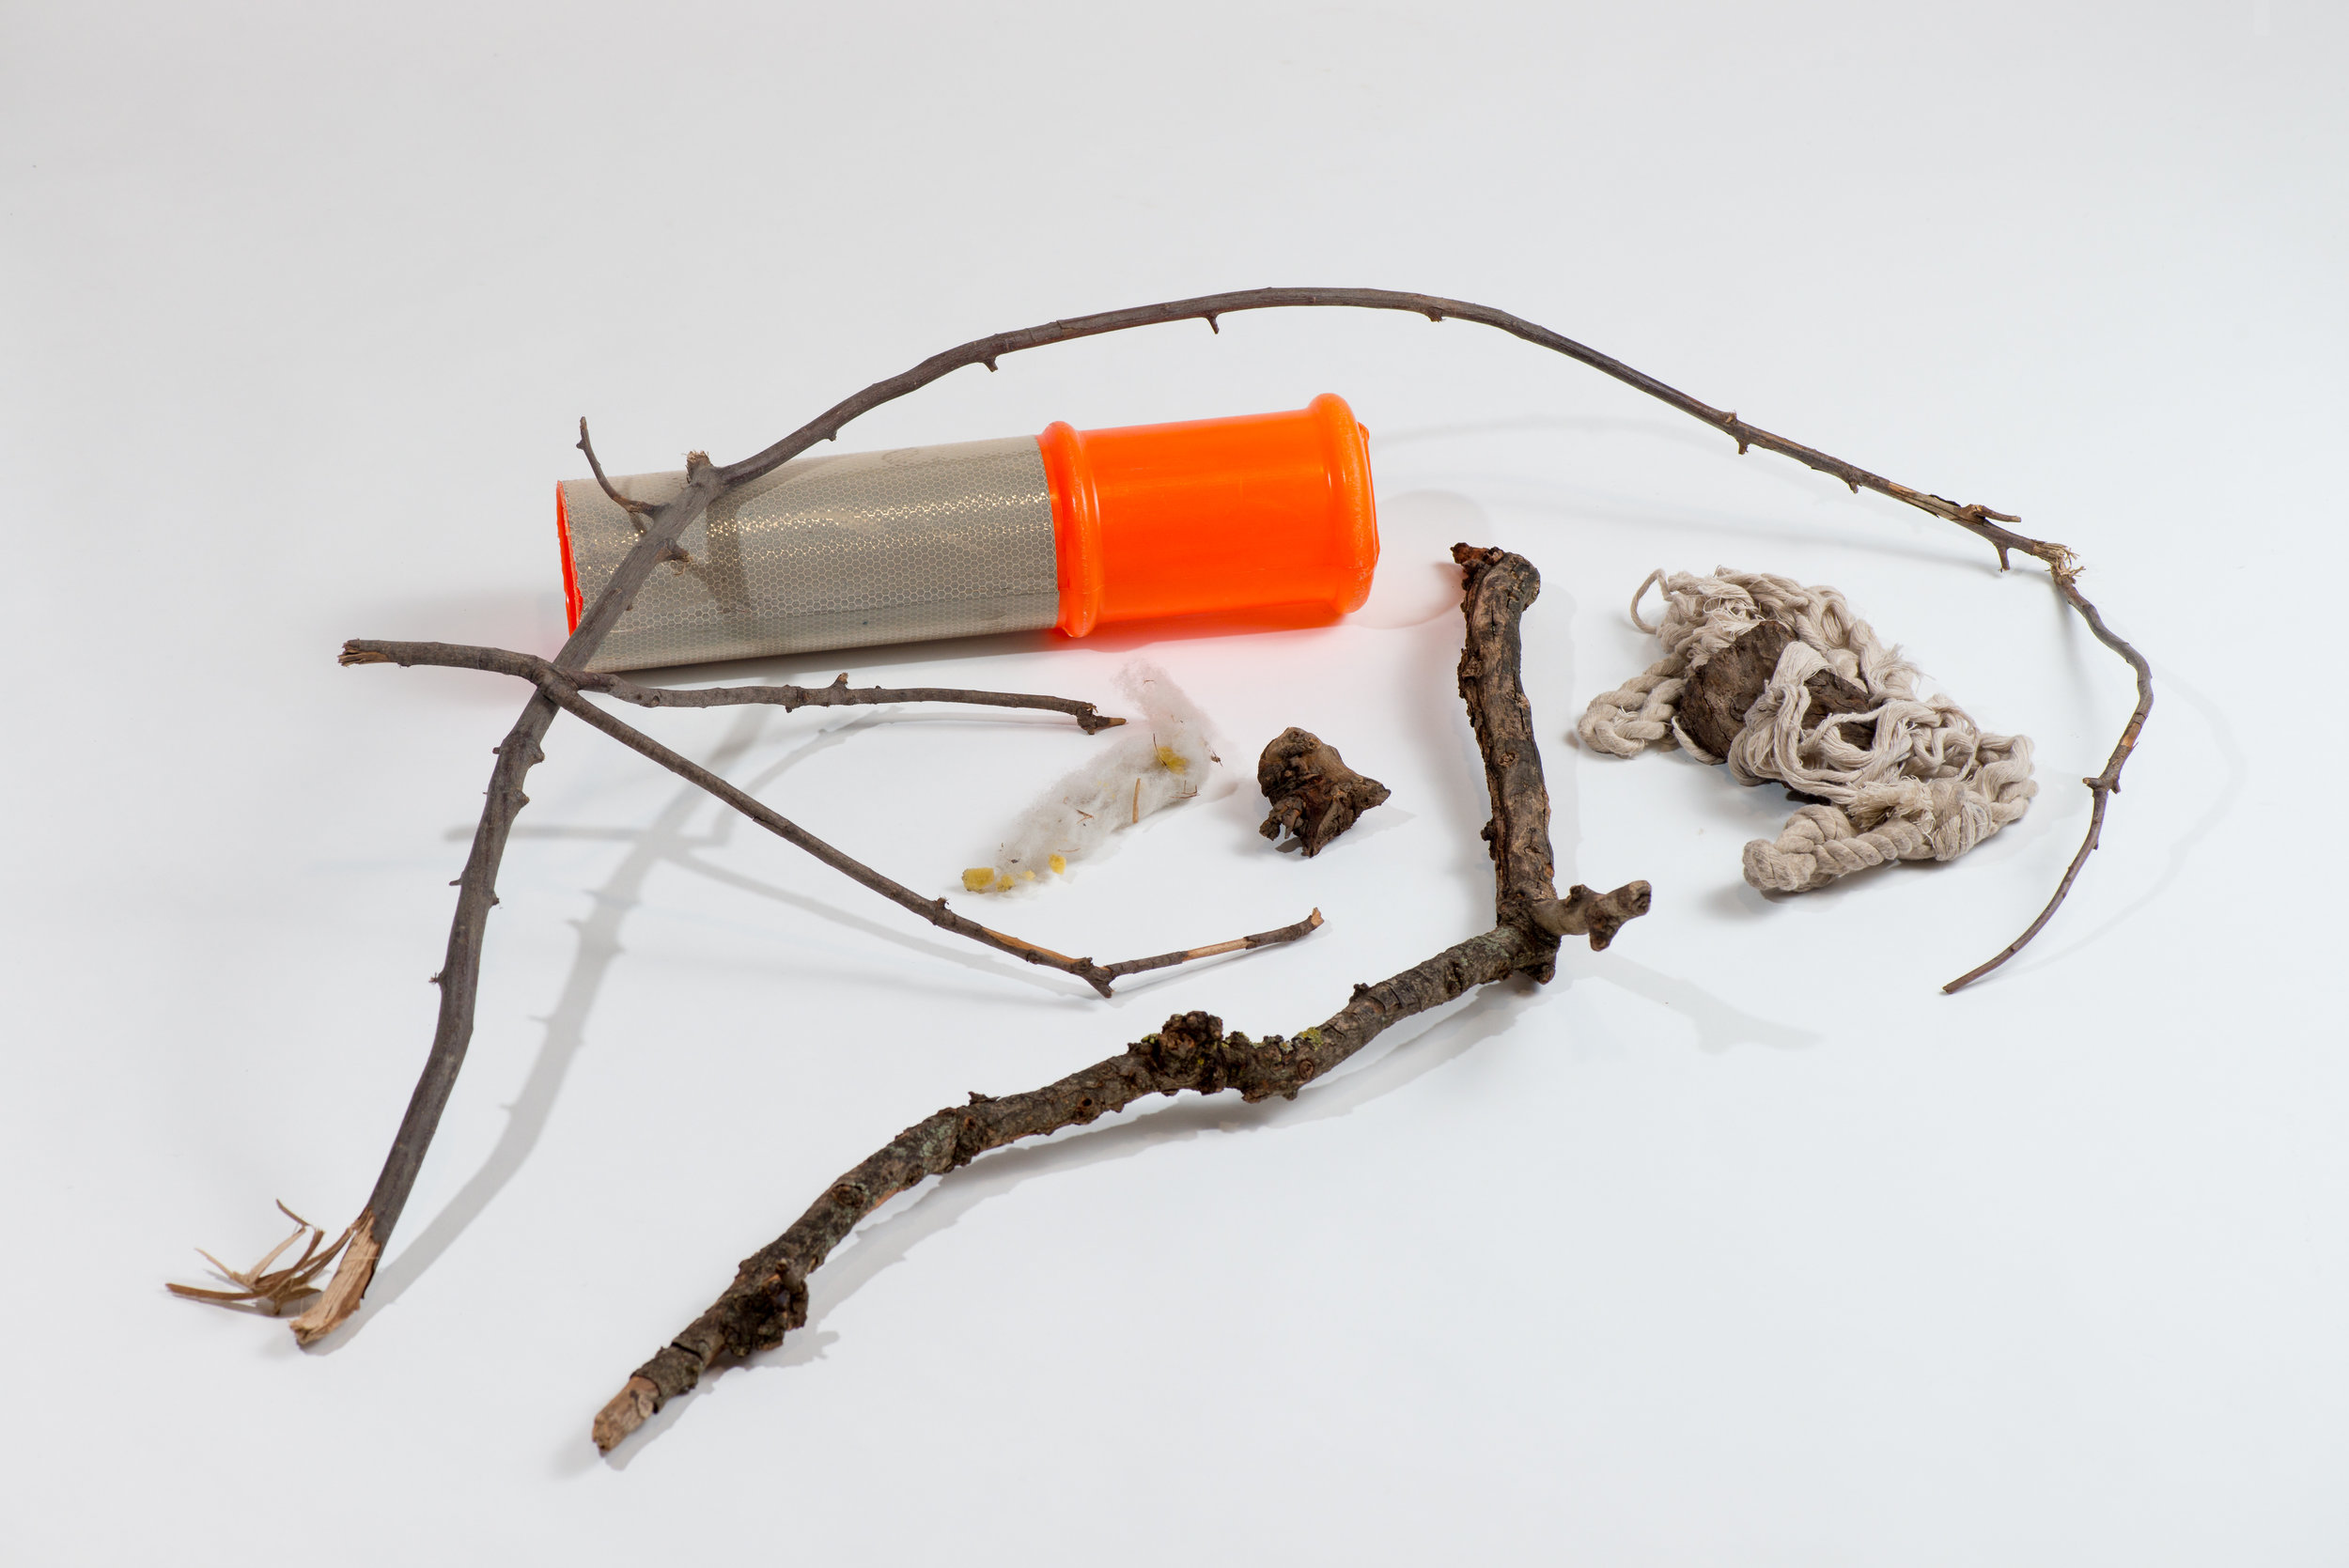 Kym Maxwell, Play Tools:Bow and Arrow,Pincher, Cannon Ball Launcher, Foam Gun, Grenade, Gun, and Rope and Weight,Collection of the Museum of Anticipation at Dandenong Primary School (Site DPS various locations internal school grounds). Materials: Sticks, branch, bollard top, root, foam with debris, rope and wood, 2018, inkjet print, 30cms x 40cms.